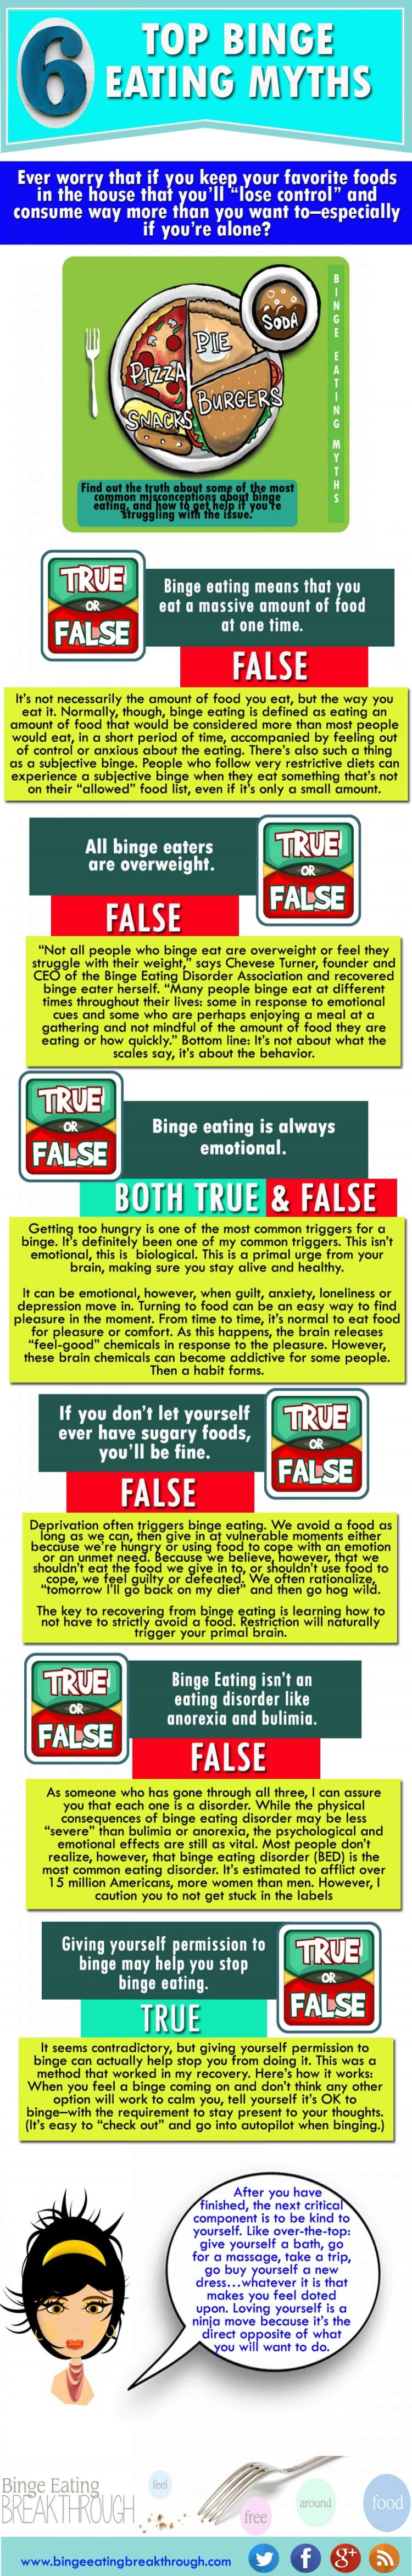 If you find yourself eating out of control, you may be a victim of binge eating #disorder, which is not good for your health. Those with binge eating disorder often have feelings of #depression, #guilt, and disgust with themselves. #BingeEating has adverse effects on your #health and it doesn't have to be this way if you can get a handle on your #eating behaviors.